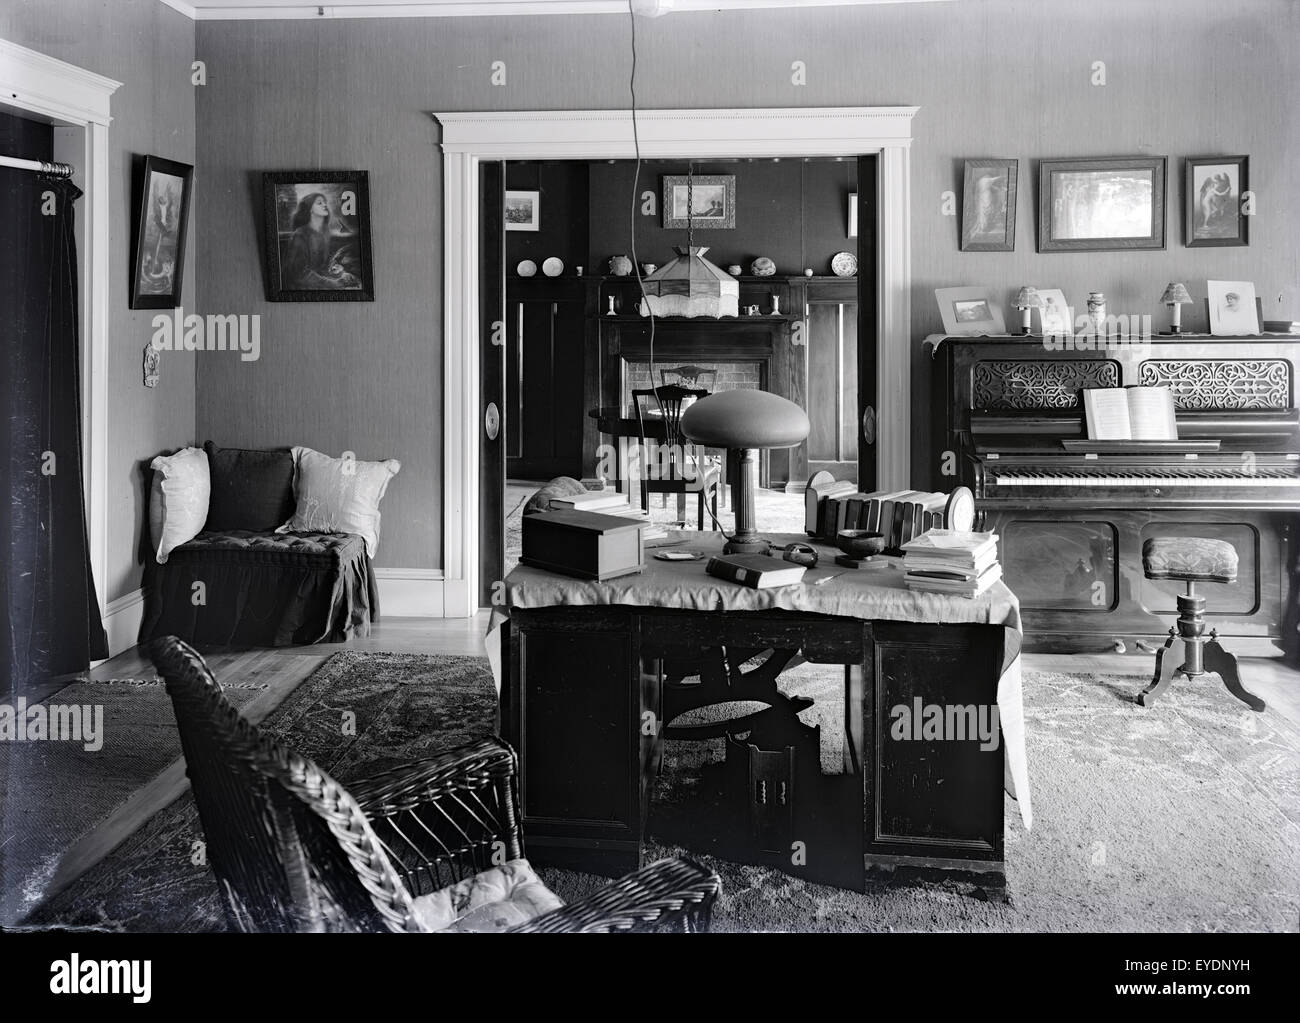 Antique c1910 photograph of a late Victorian, circa 1910s parlor with upright piano and furnishings. See Alamy image Stock Photo